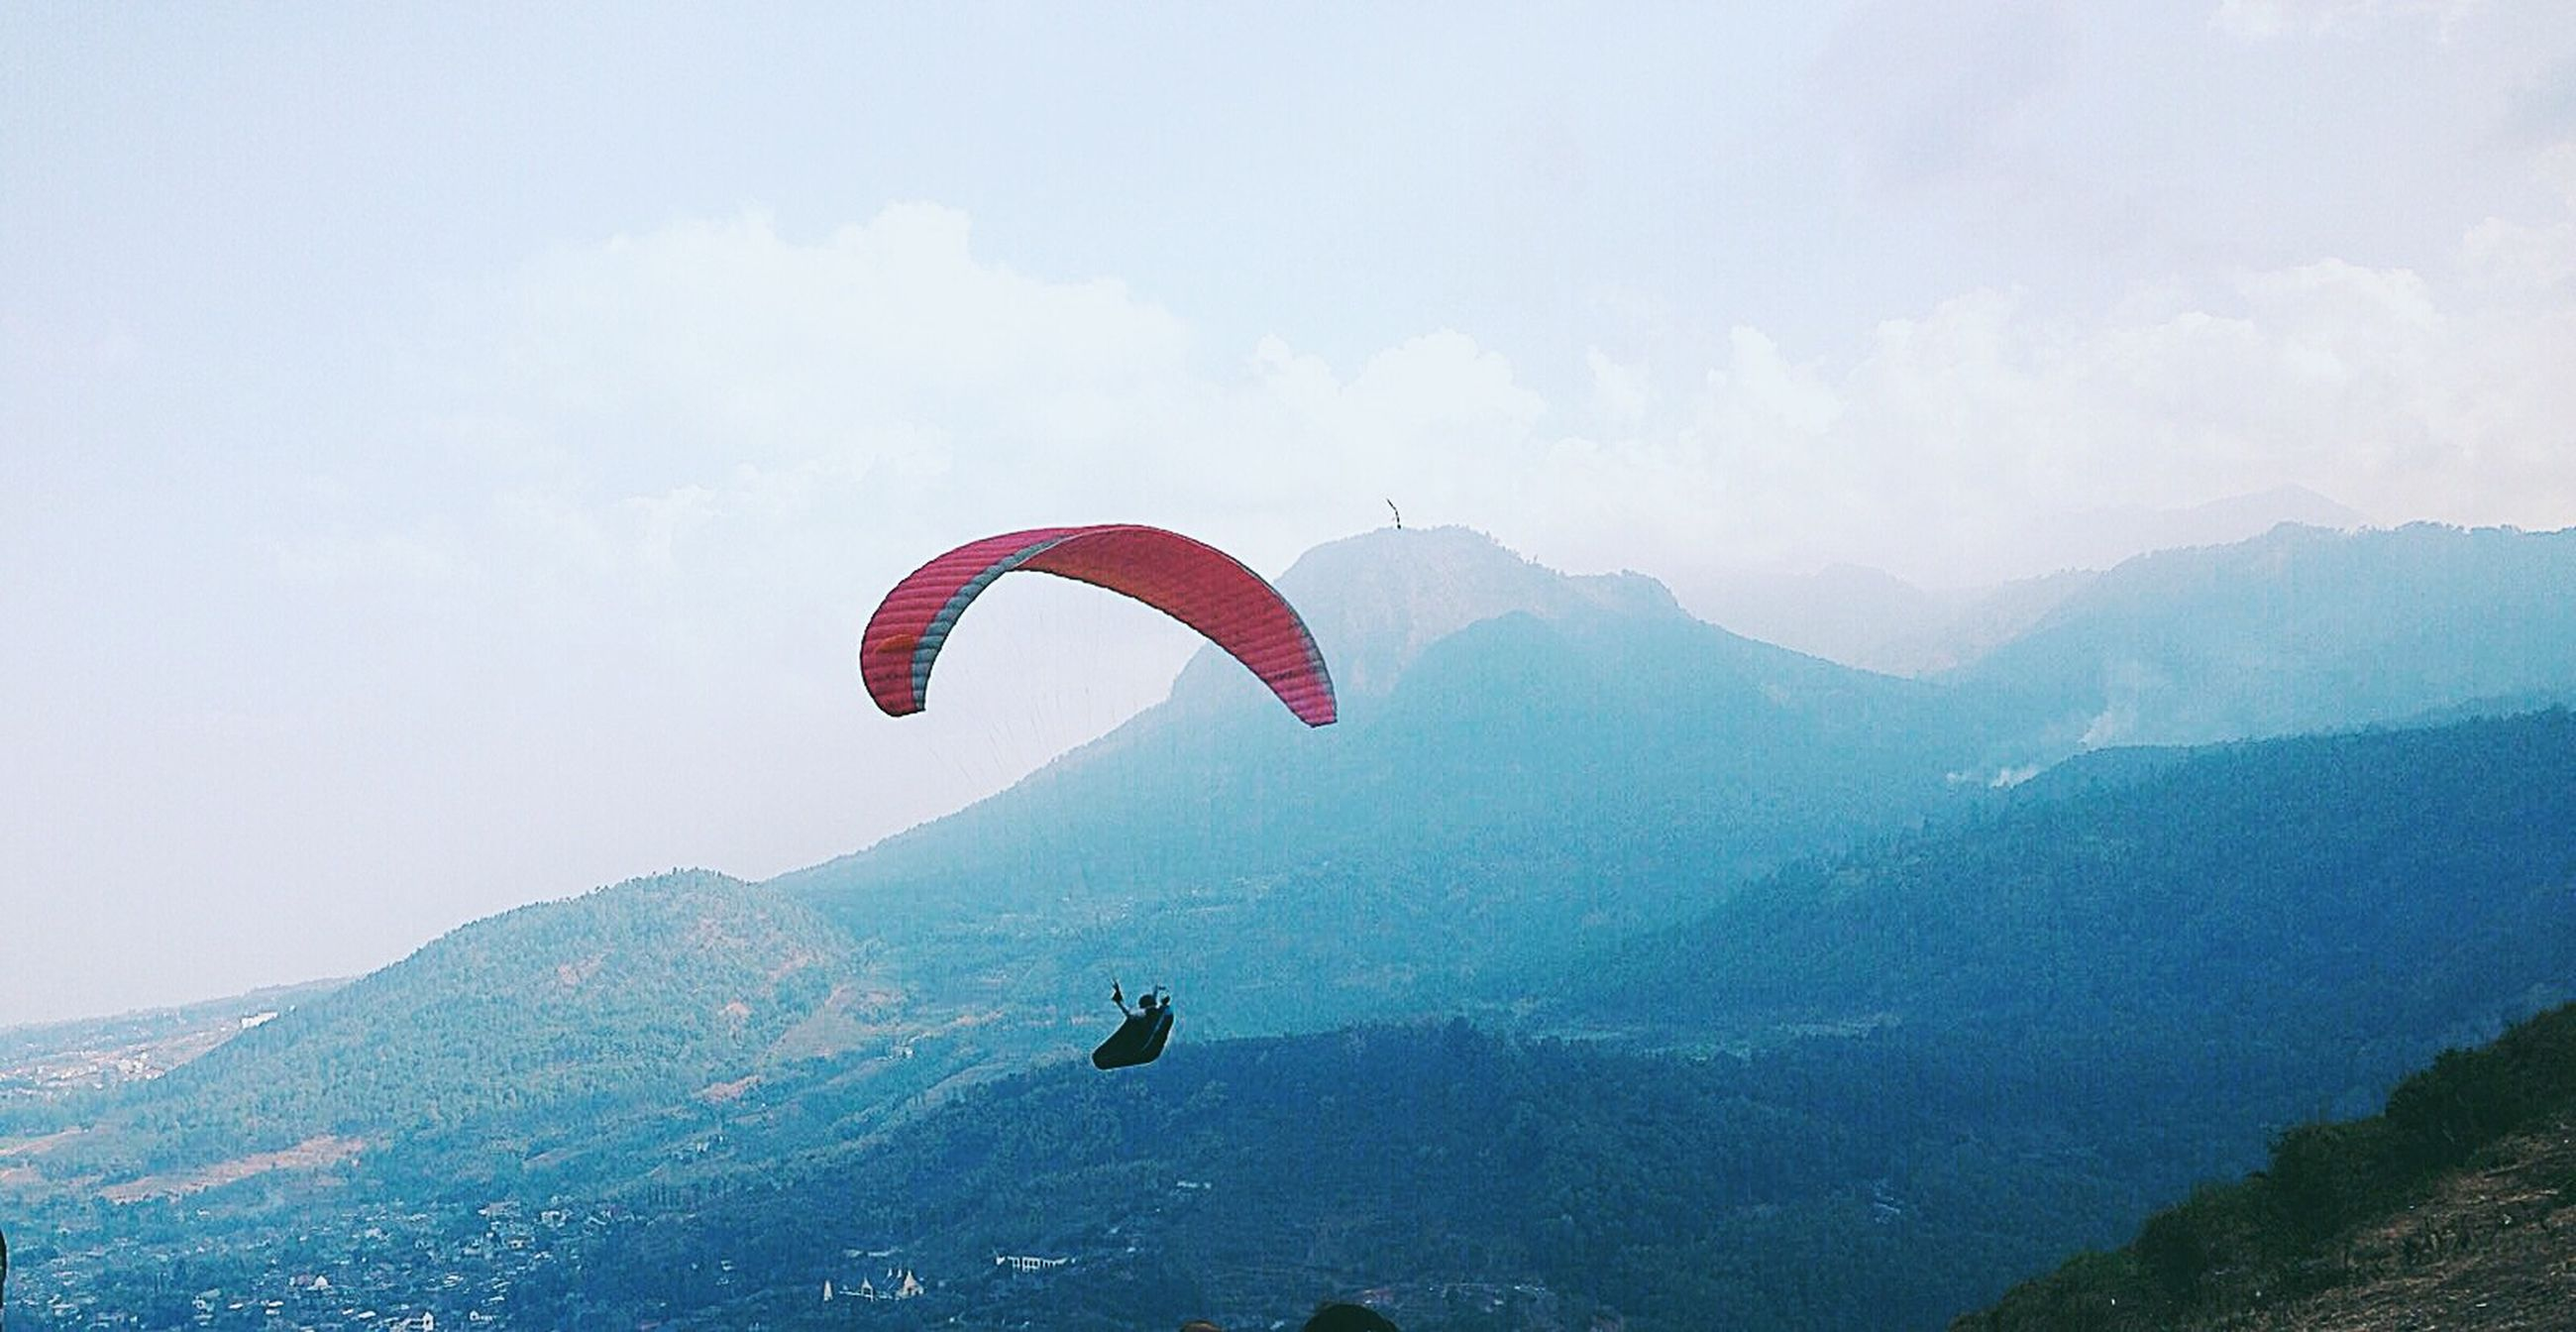 extreme sports, adventure, mid-air, parachute, mountain, leisure activity, paragliding, flying, lifestyles, sport, exhilaration, freedom, unrecognizable person, sky, low angle view, mountain range, transportation, vacations